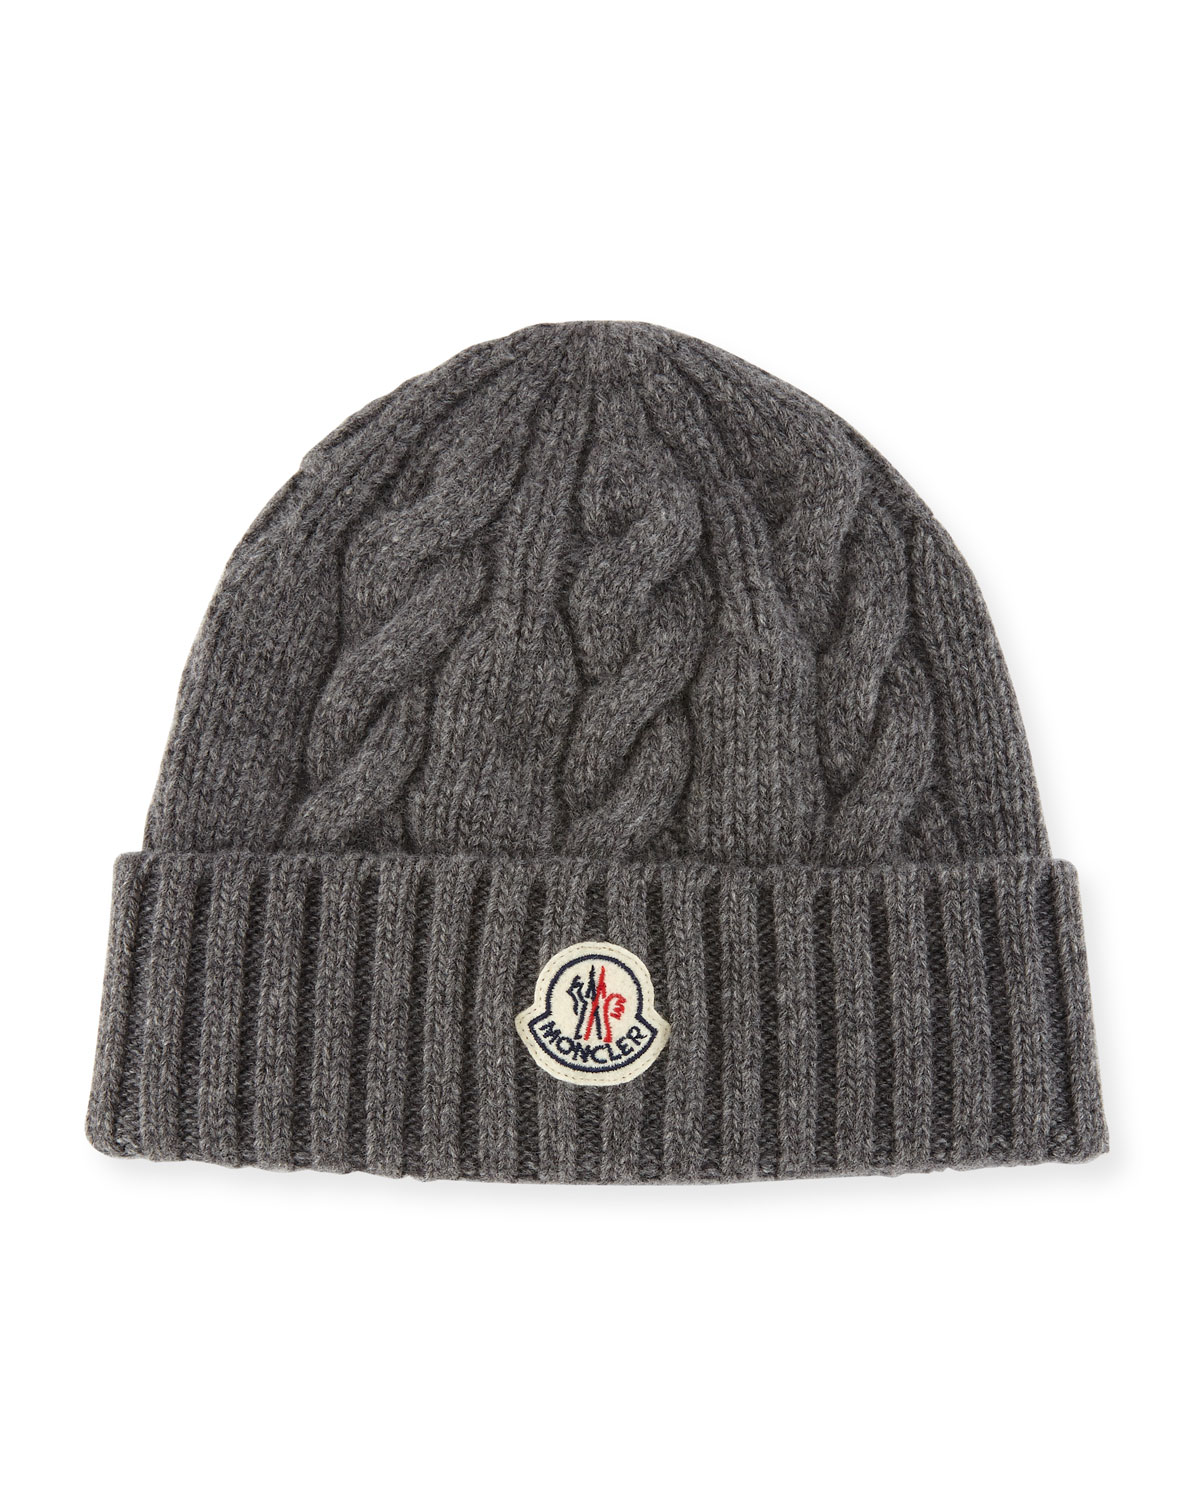 Moncler Men s Cable-Knit Wool Beanie Hat  4fe767108f5f